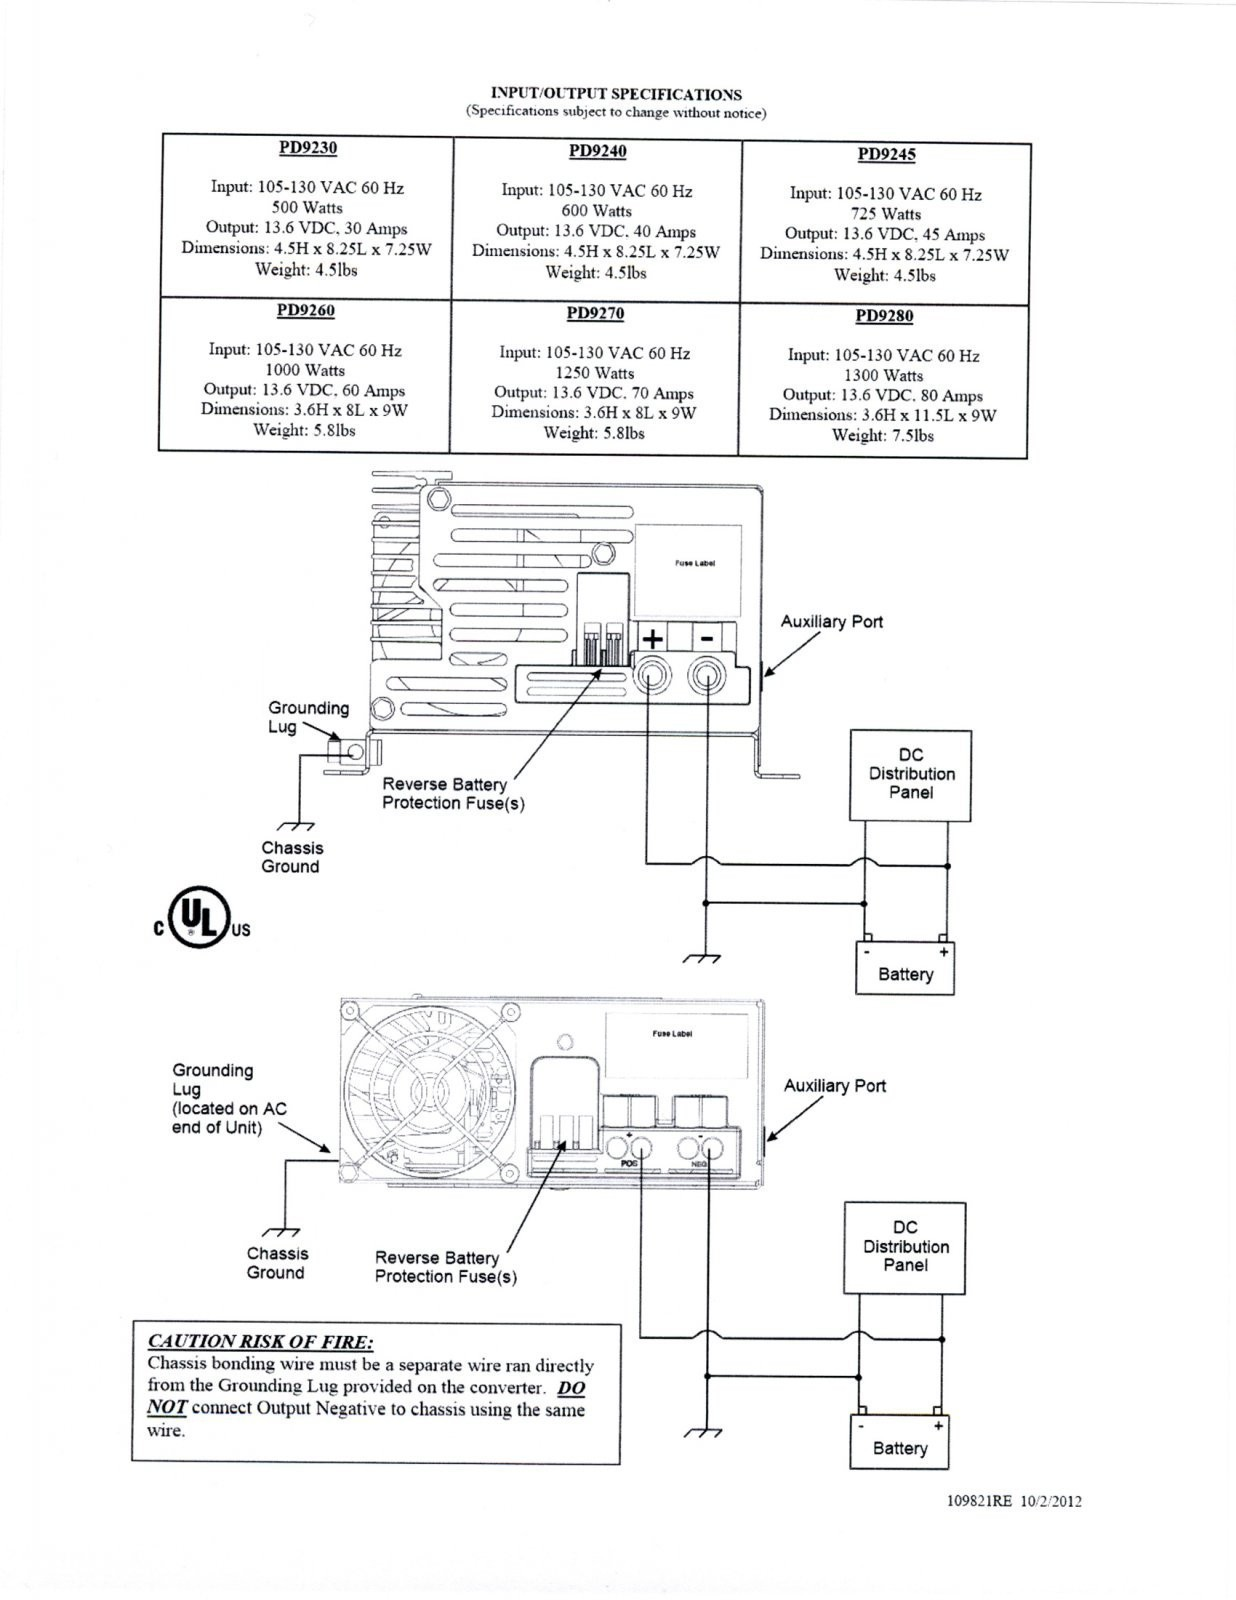 hight resolution of rv inverter wiring diagram in progressive dynamics pd9200 series and power